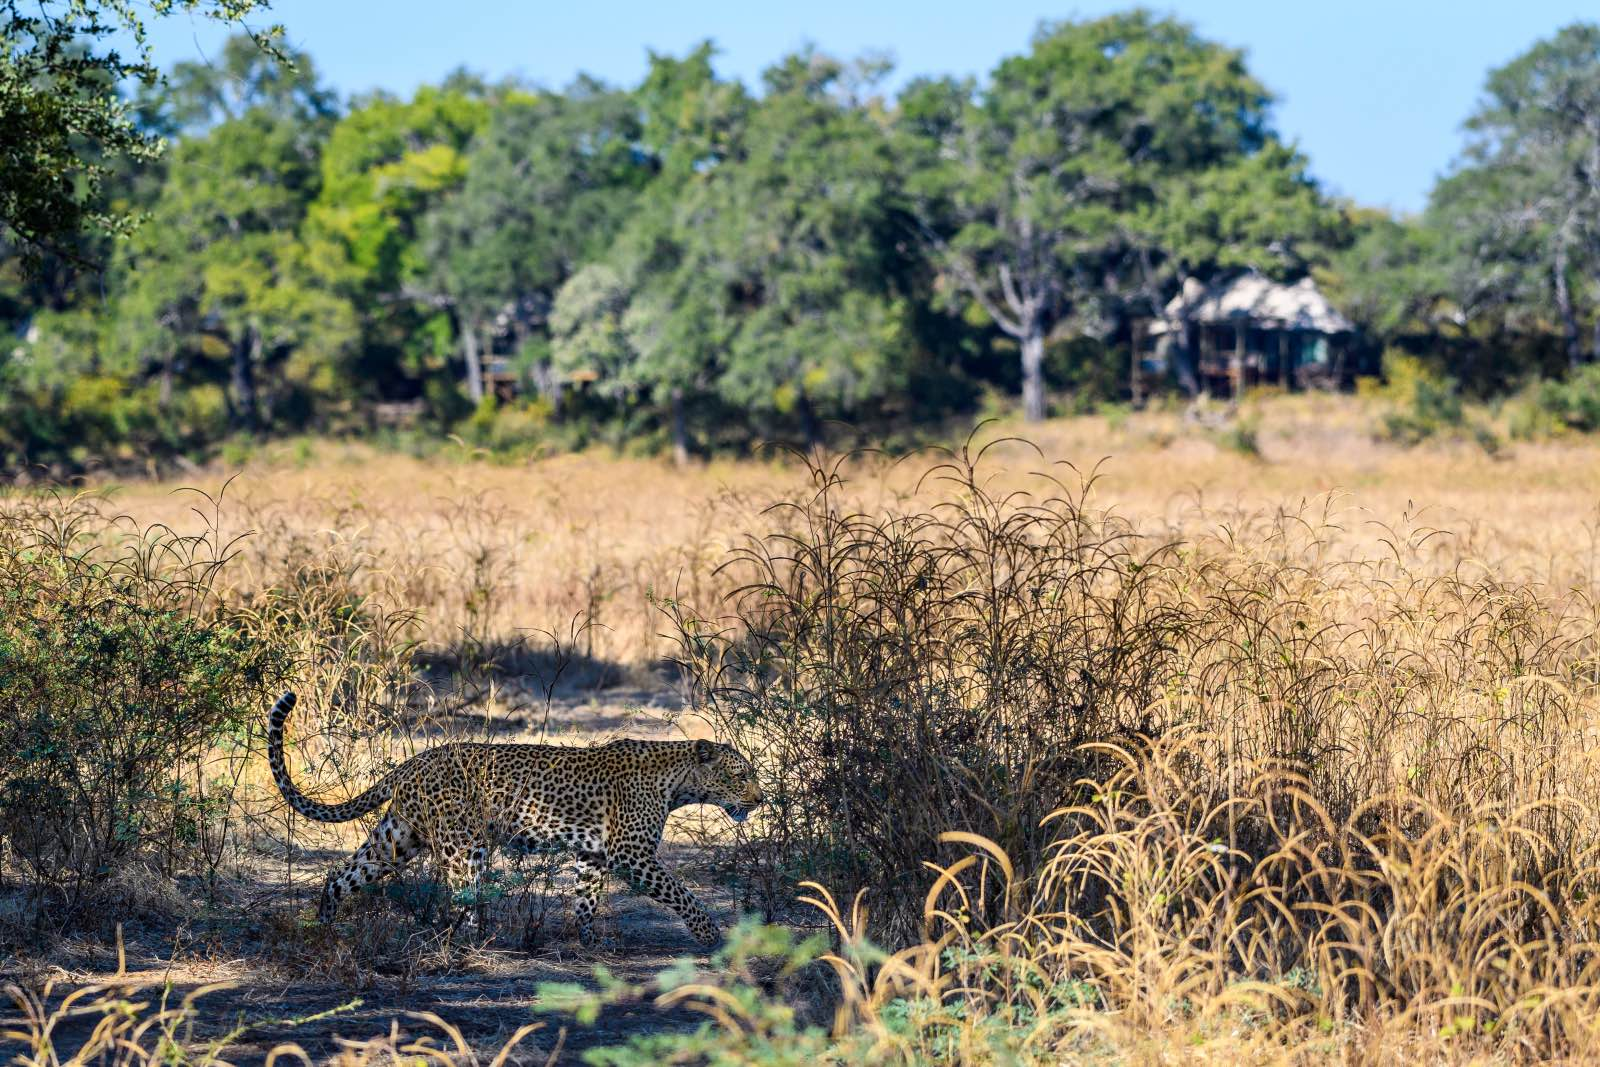 Leopard stalks in the grass in front of Chindeni